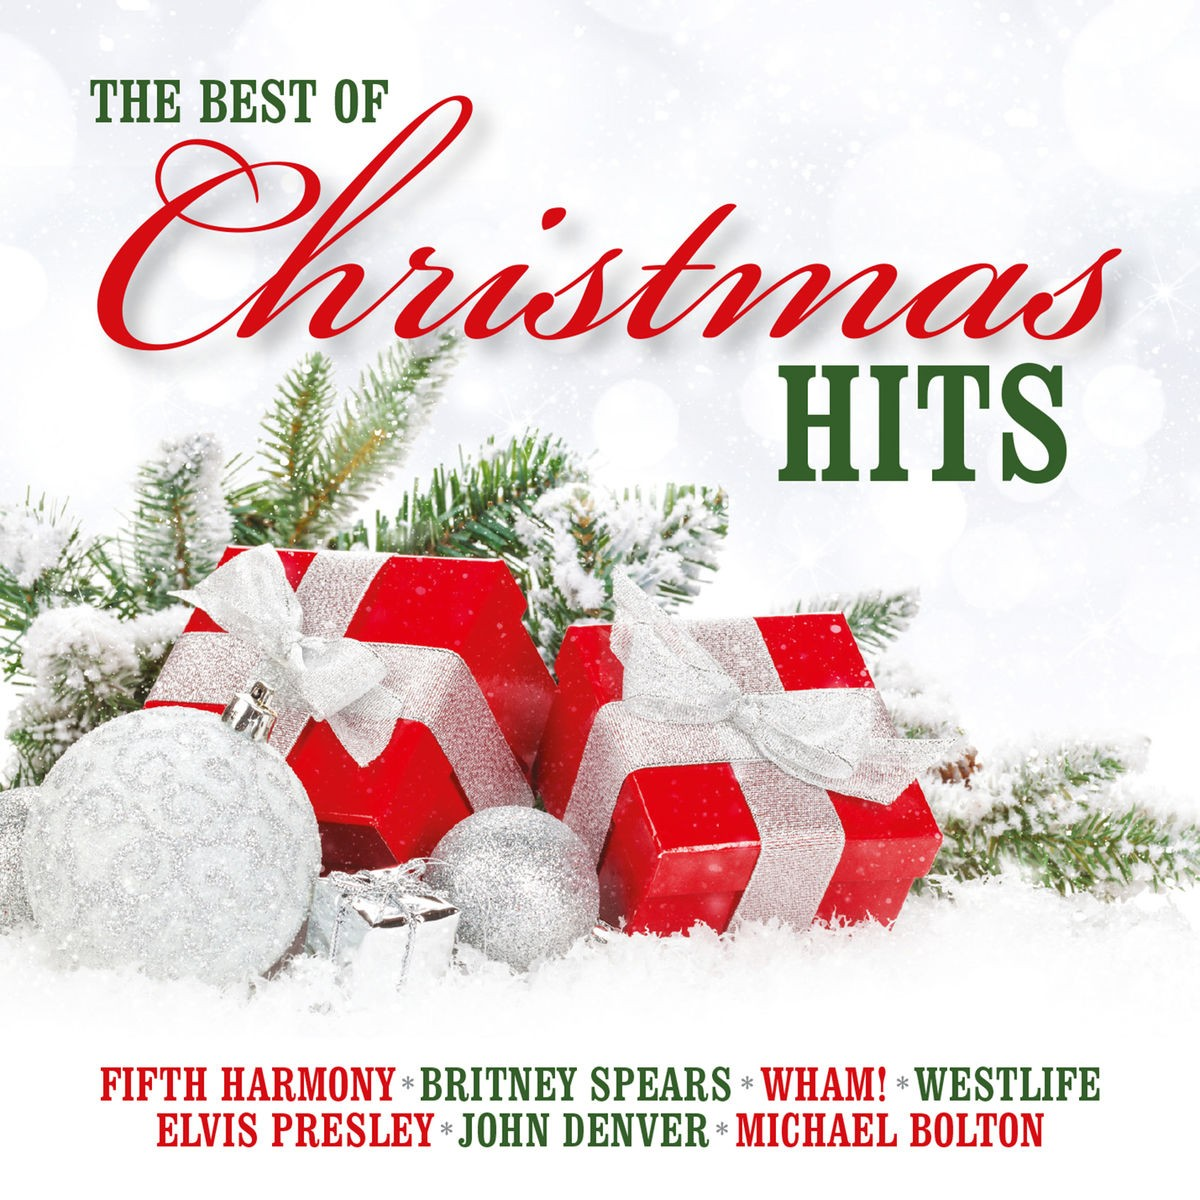 The Best Of Christmas Hits [CD] | Echo\'s Record Bar Online Store